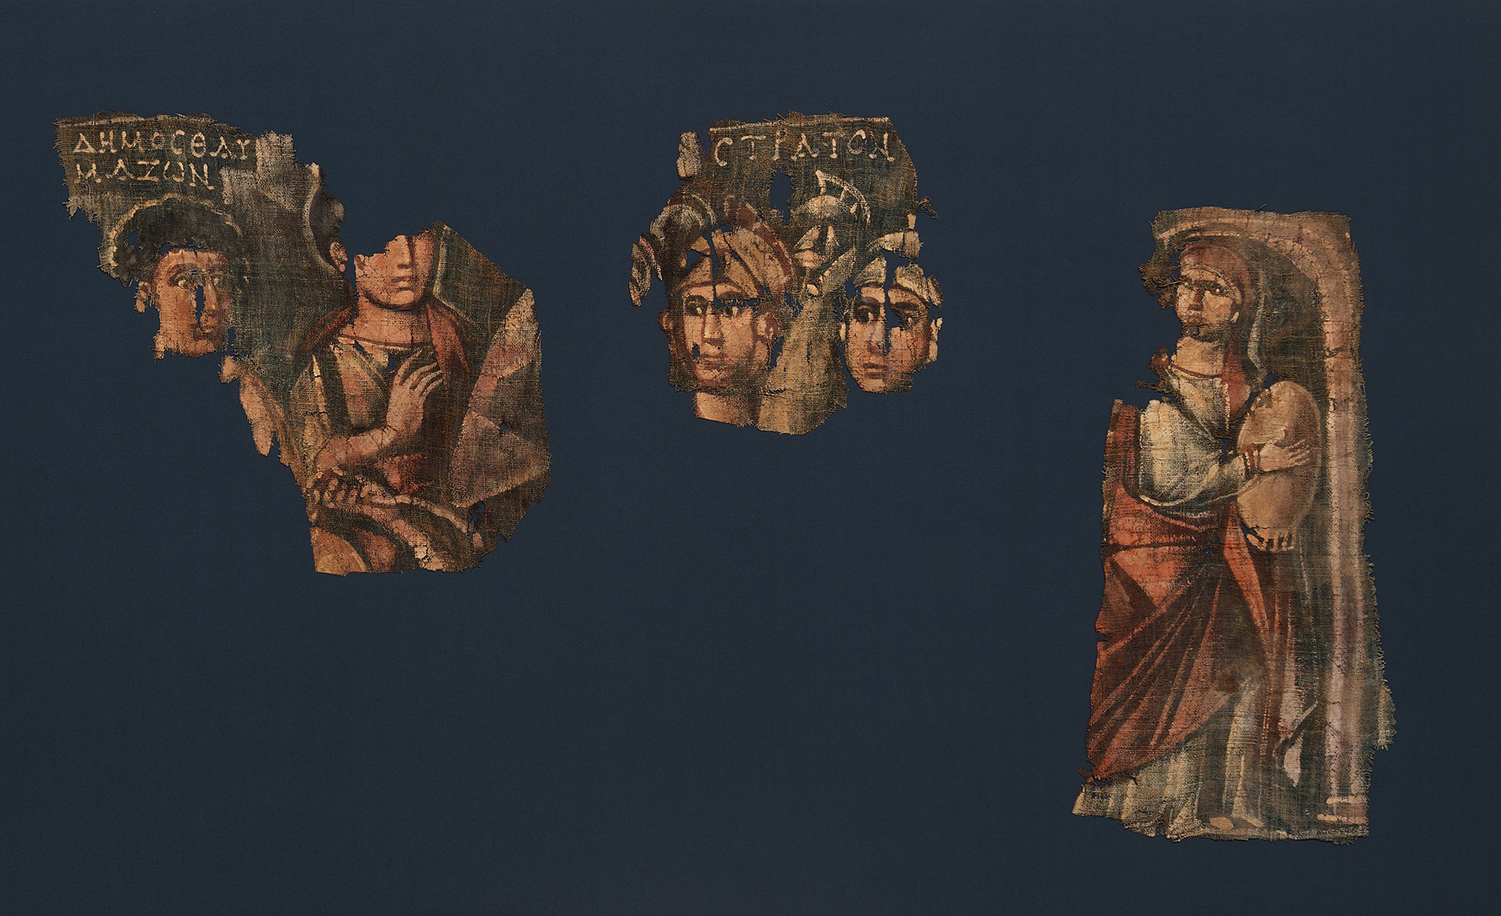 Five elements from a painted Byzantine hanging depicting the Israelite crossing of the Red Sea, mid-2nd to mid-4th century CE, Metropolitan Museum of Art.